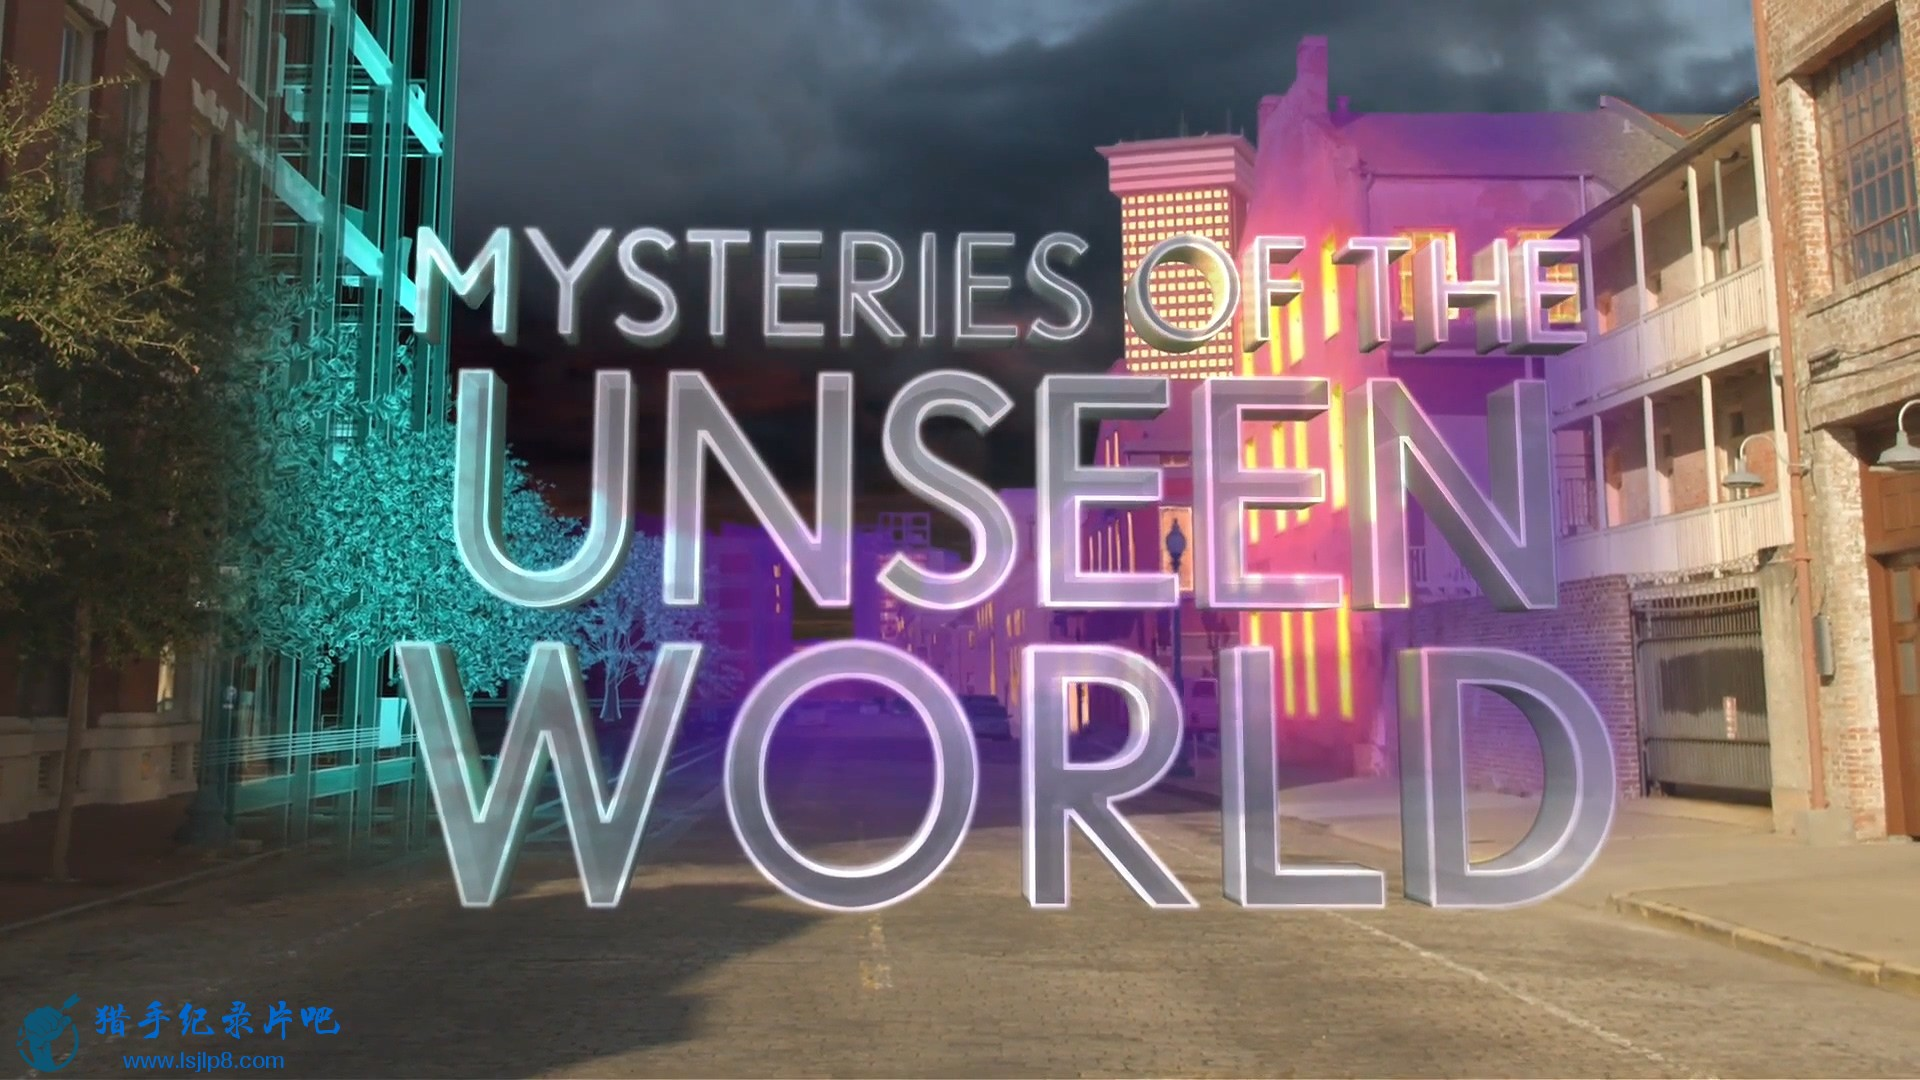 Mysteries.of.the.Unseen.World.2013.1080p.BluRay.x264.AAC.MVGroup.org.mkv_2019092.jpg